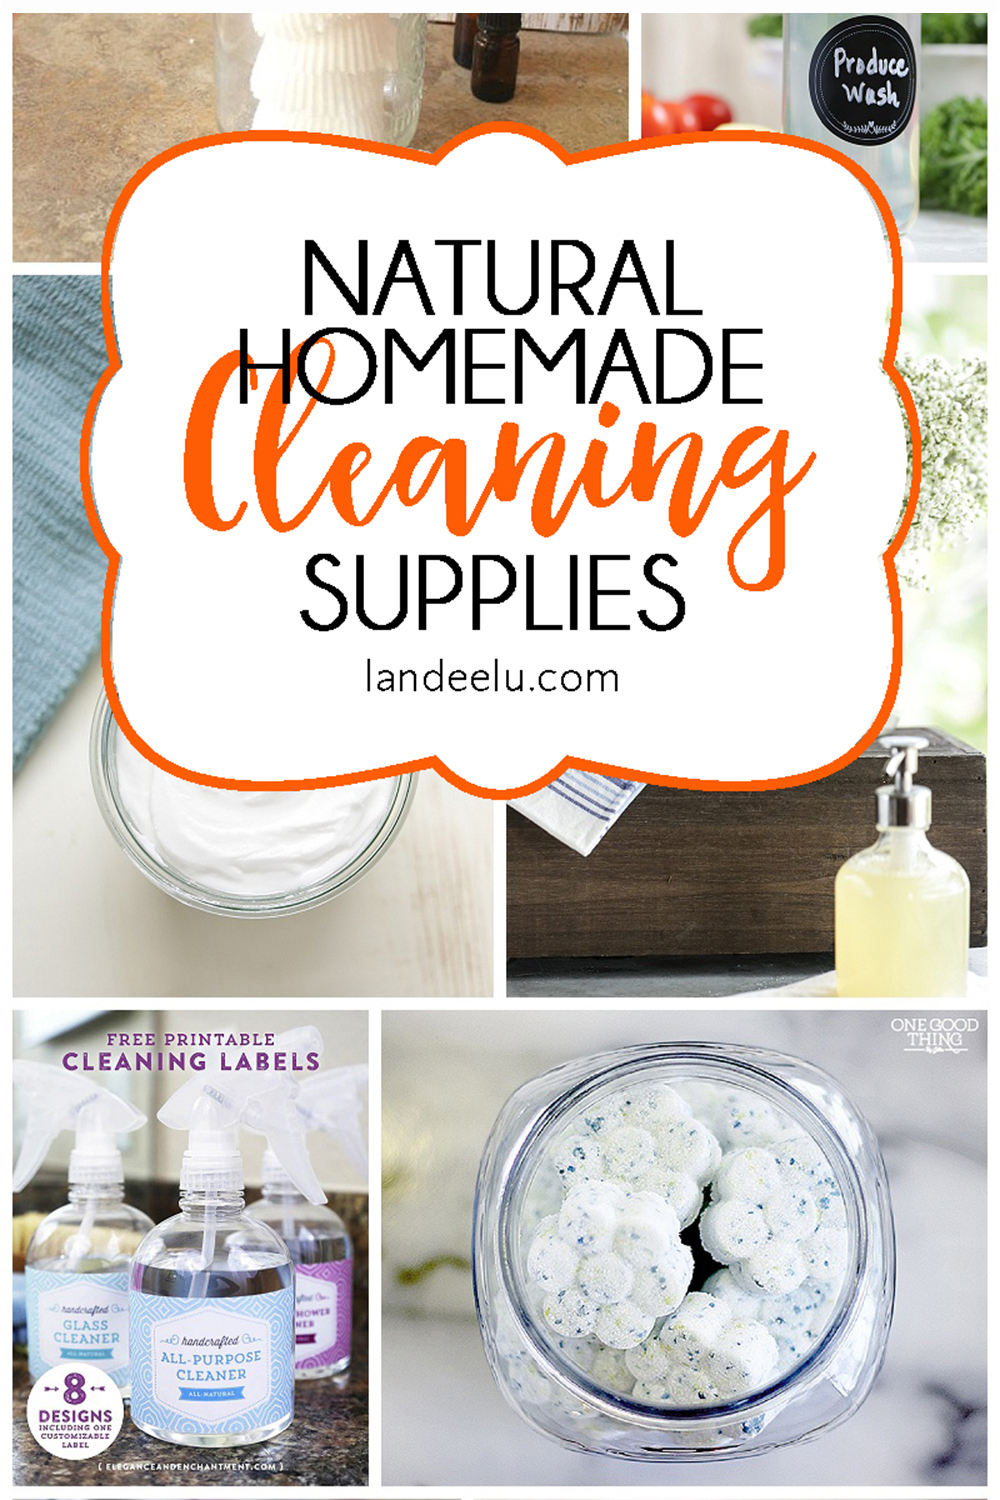 I love the idea of homemade cleaning products ... non-toxic, natural and less expensive. #naturalcleaners #homemadecleaners #homemadecleaningproducts #diycleaners